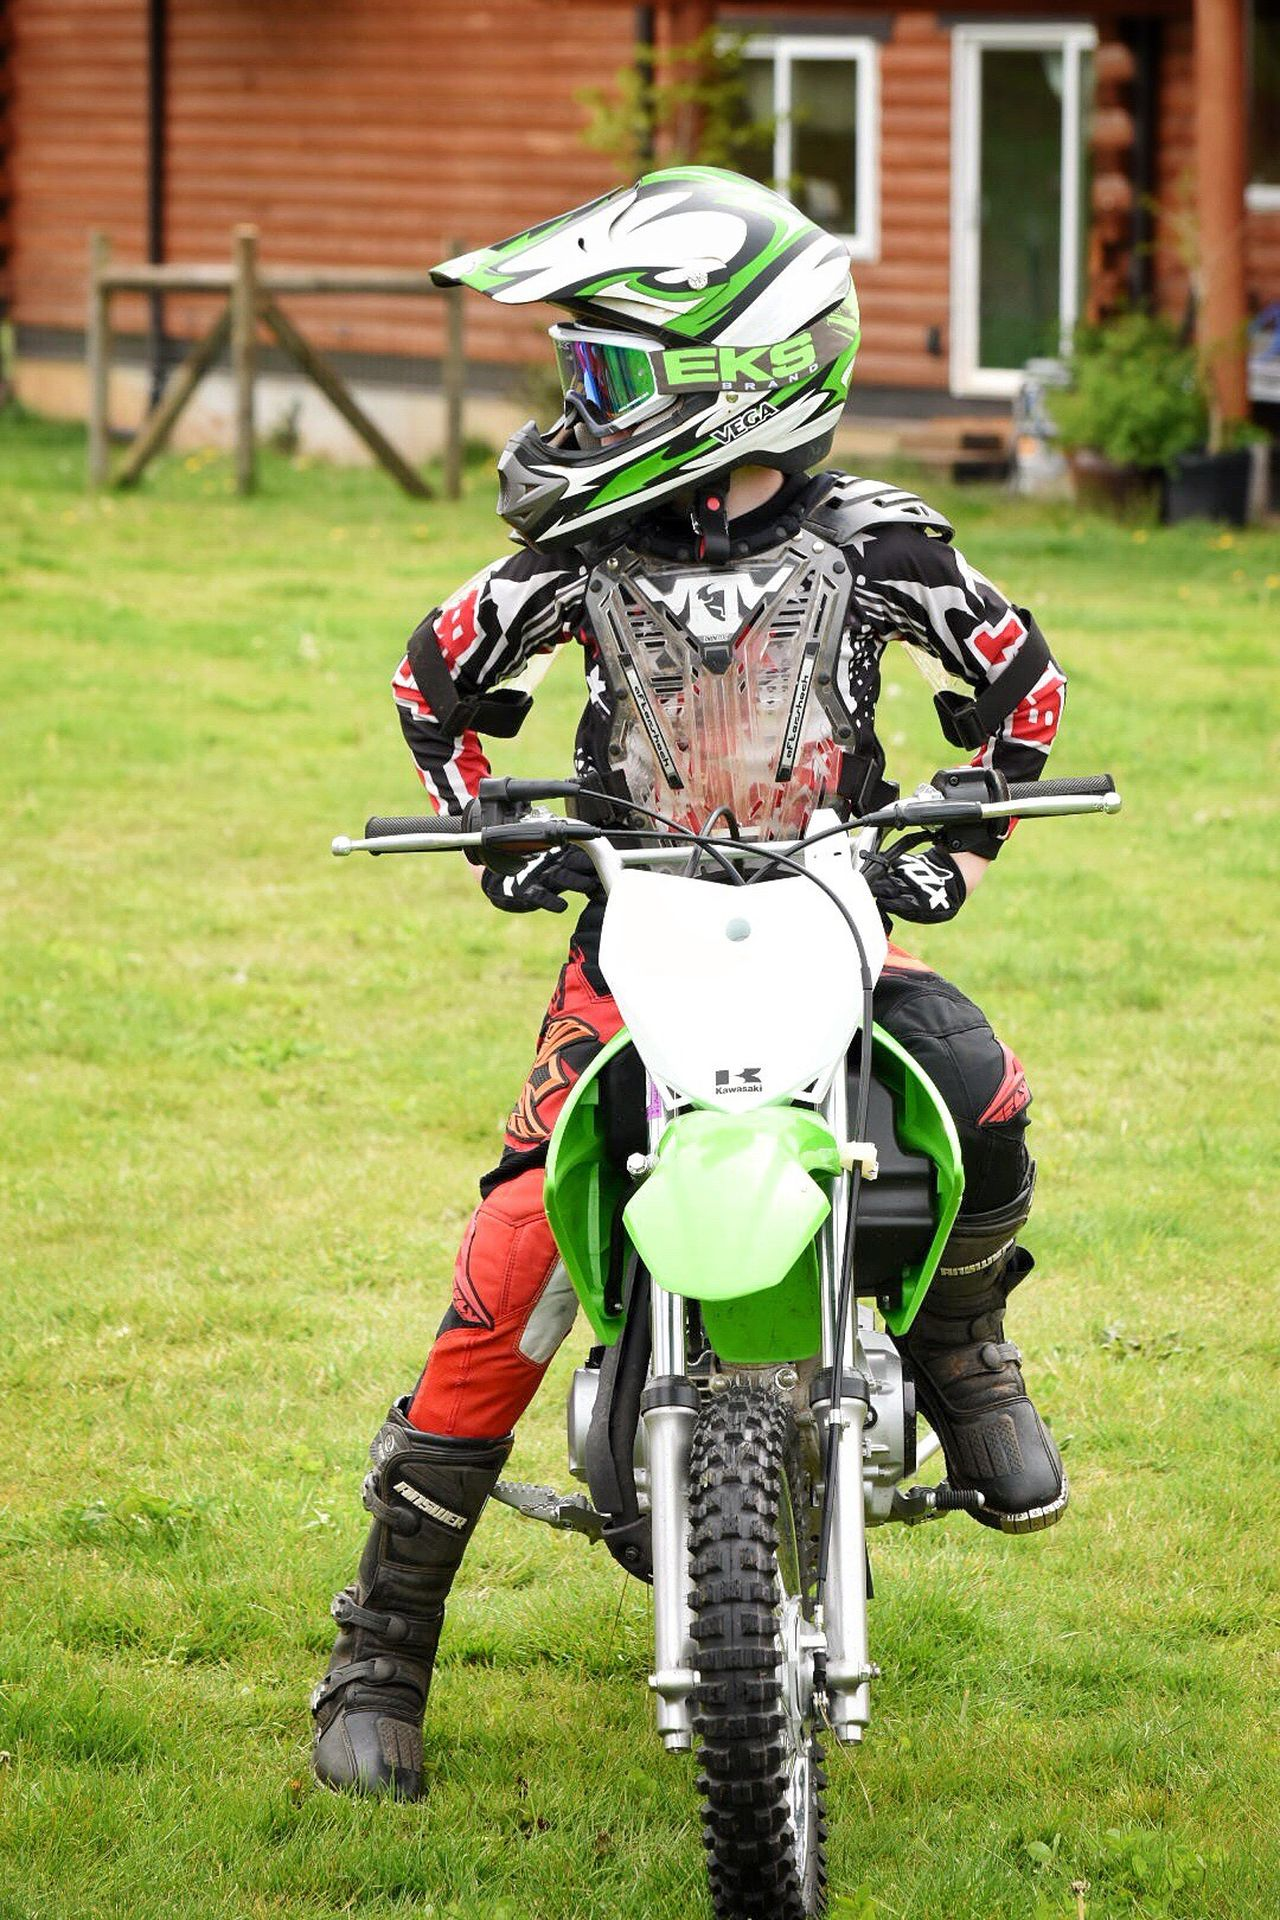 Grass Motorcycle Outdoors Green Color Headwear Day Stationary No People Sport Protective Workwear Close-up The Great Outdoors - 2017 EyeEm Awards Childhood Memories Youth Of Today Dirtbike Youth Culture Sports Helmet Motocross Crash Helmet Lifestyles Motorcycle Riding Motorsport Extreme Sports Real People